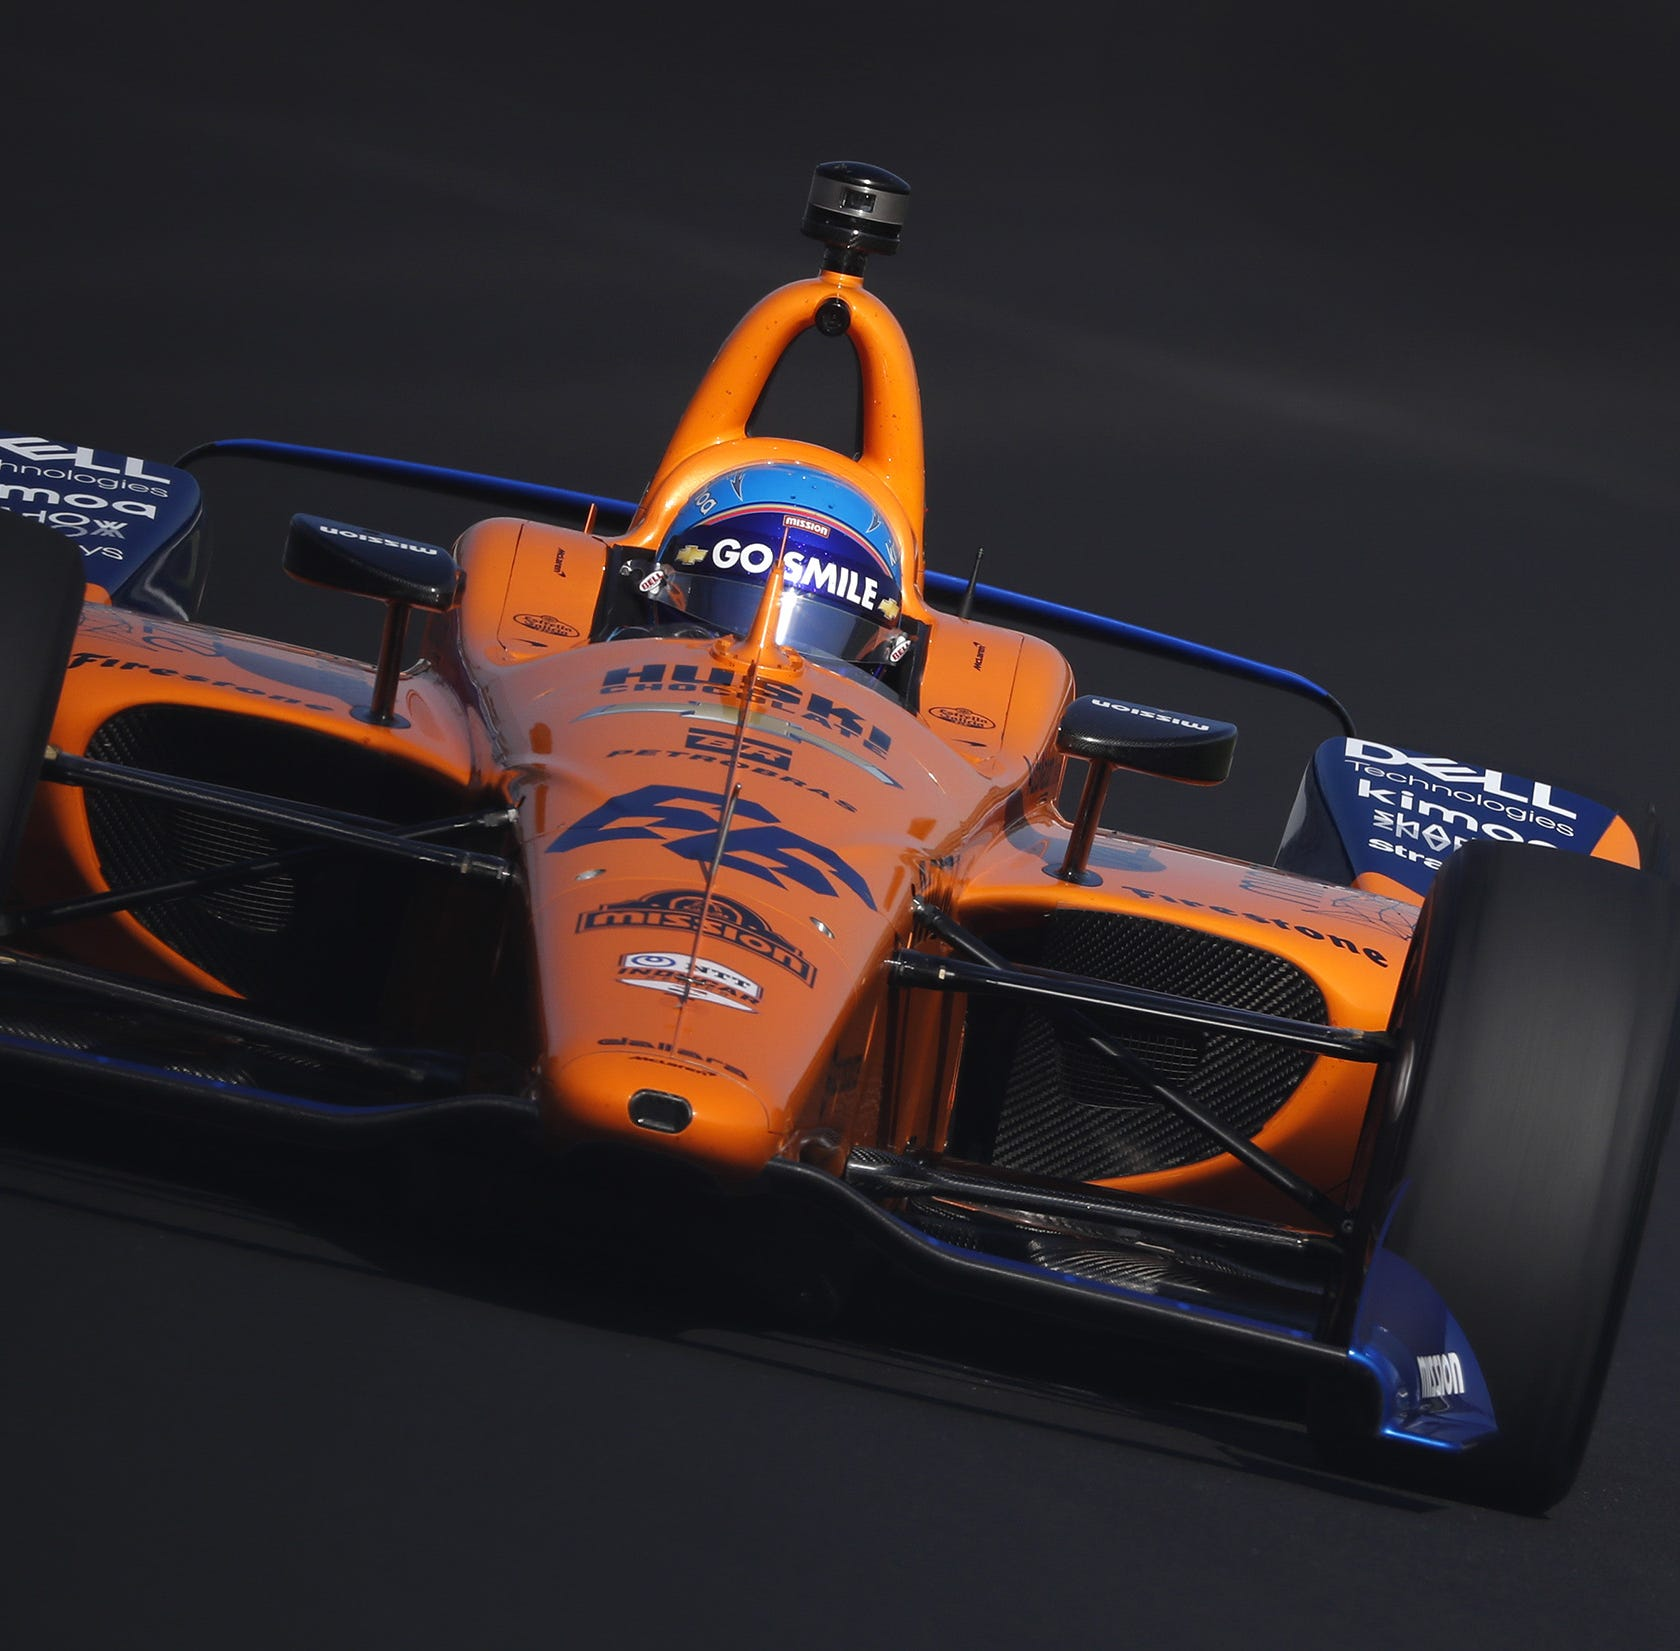 Fernando Alonso (66) of McLaren Racing rounds turn one during the morning practice for the Indianapolis 500 at the Indianapolis Motor Speedway on Saturday, May 18, 2019.